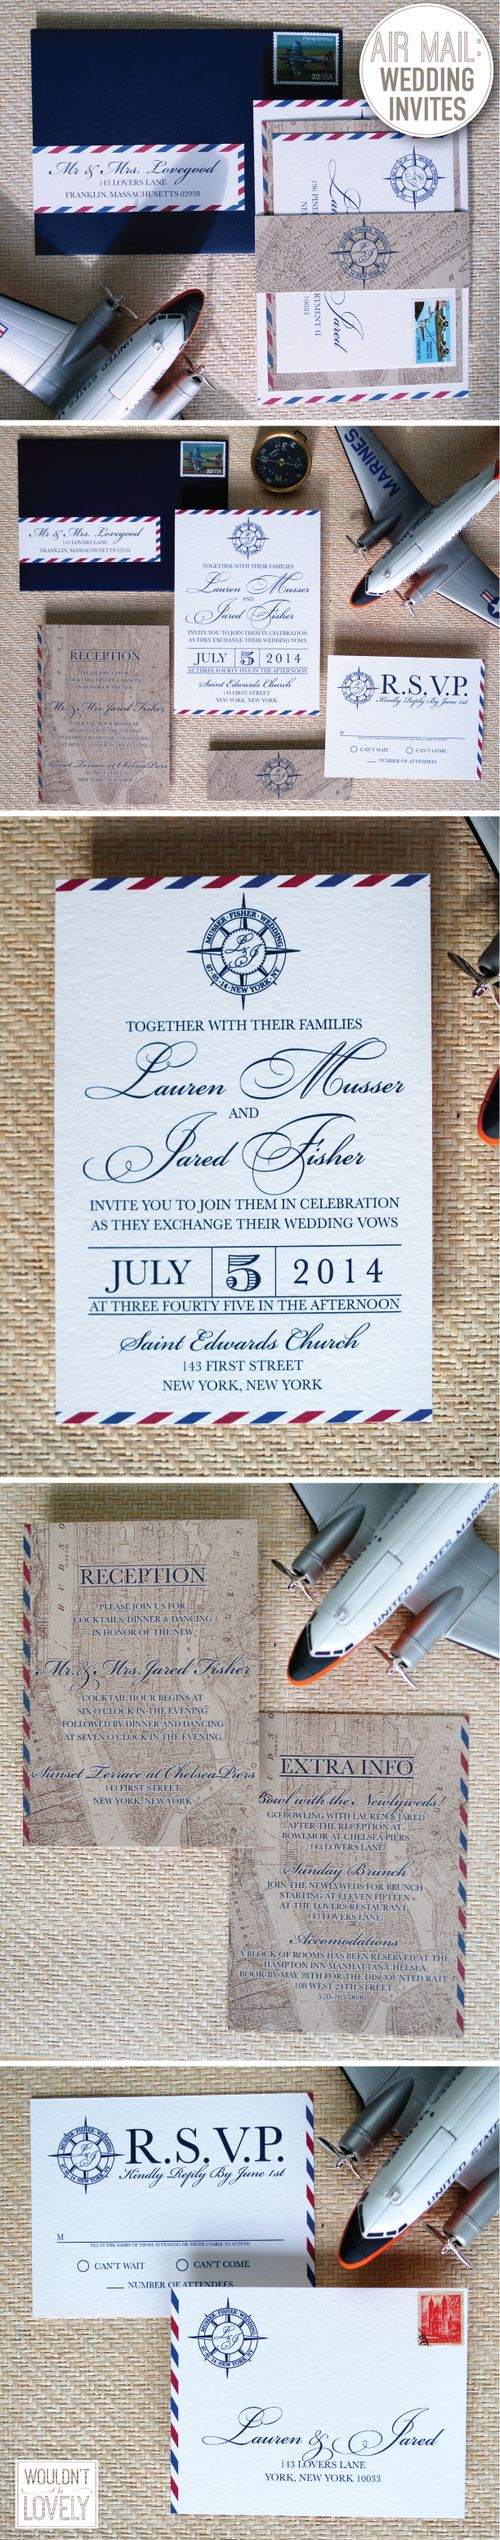 Air Mail Wedding invitation suite, red white and blue wedding invitations, vintage map of NYC wedding invite, compass wedding logo, 4th of July wedding, Wouldn't it be Lovely